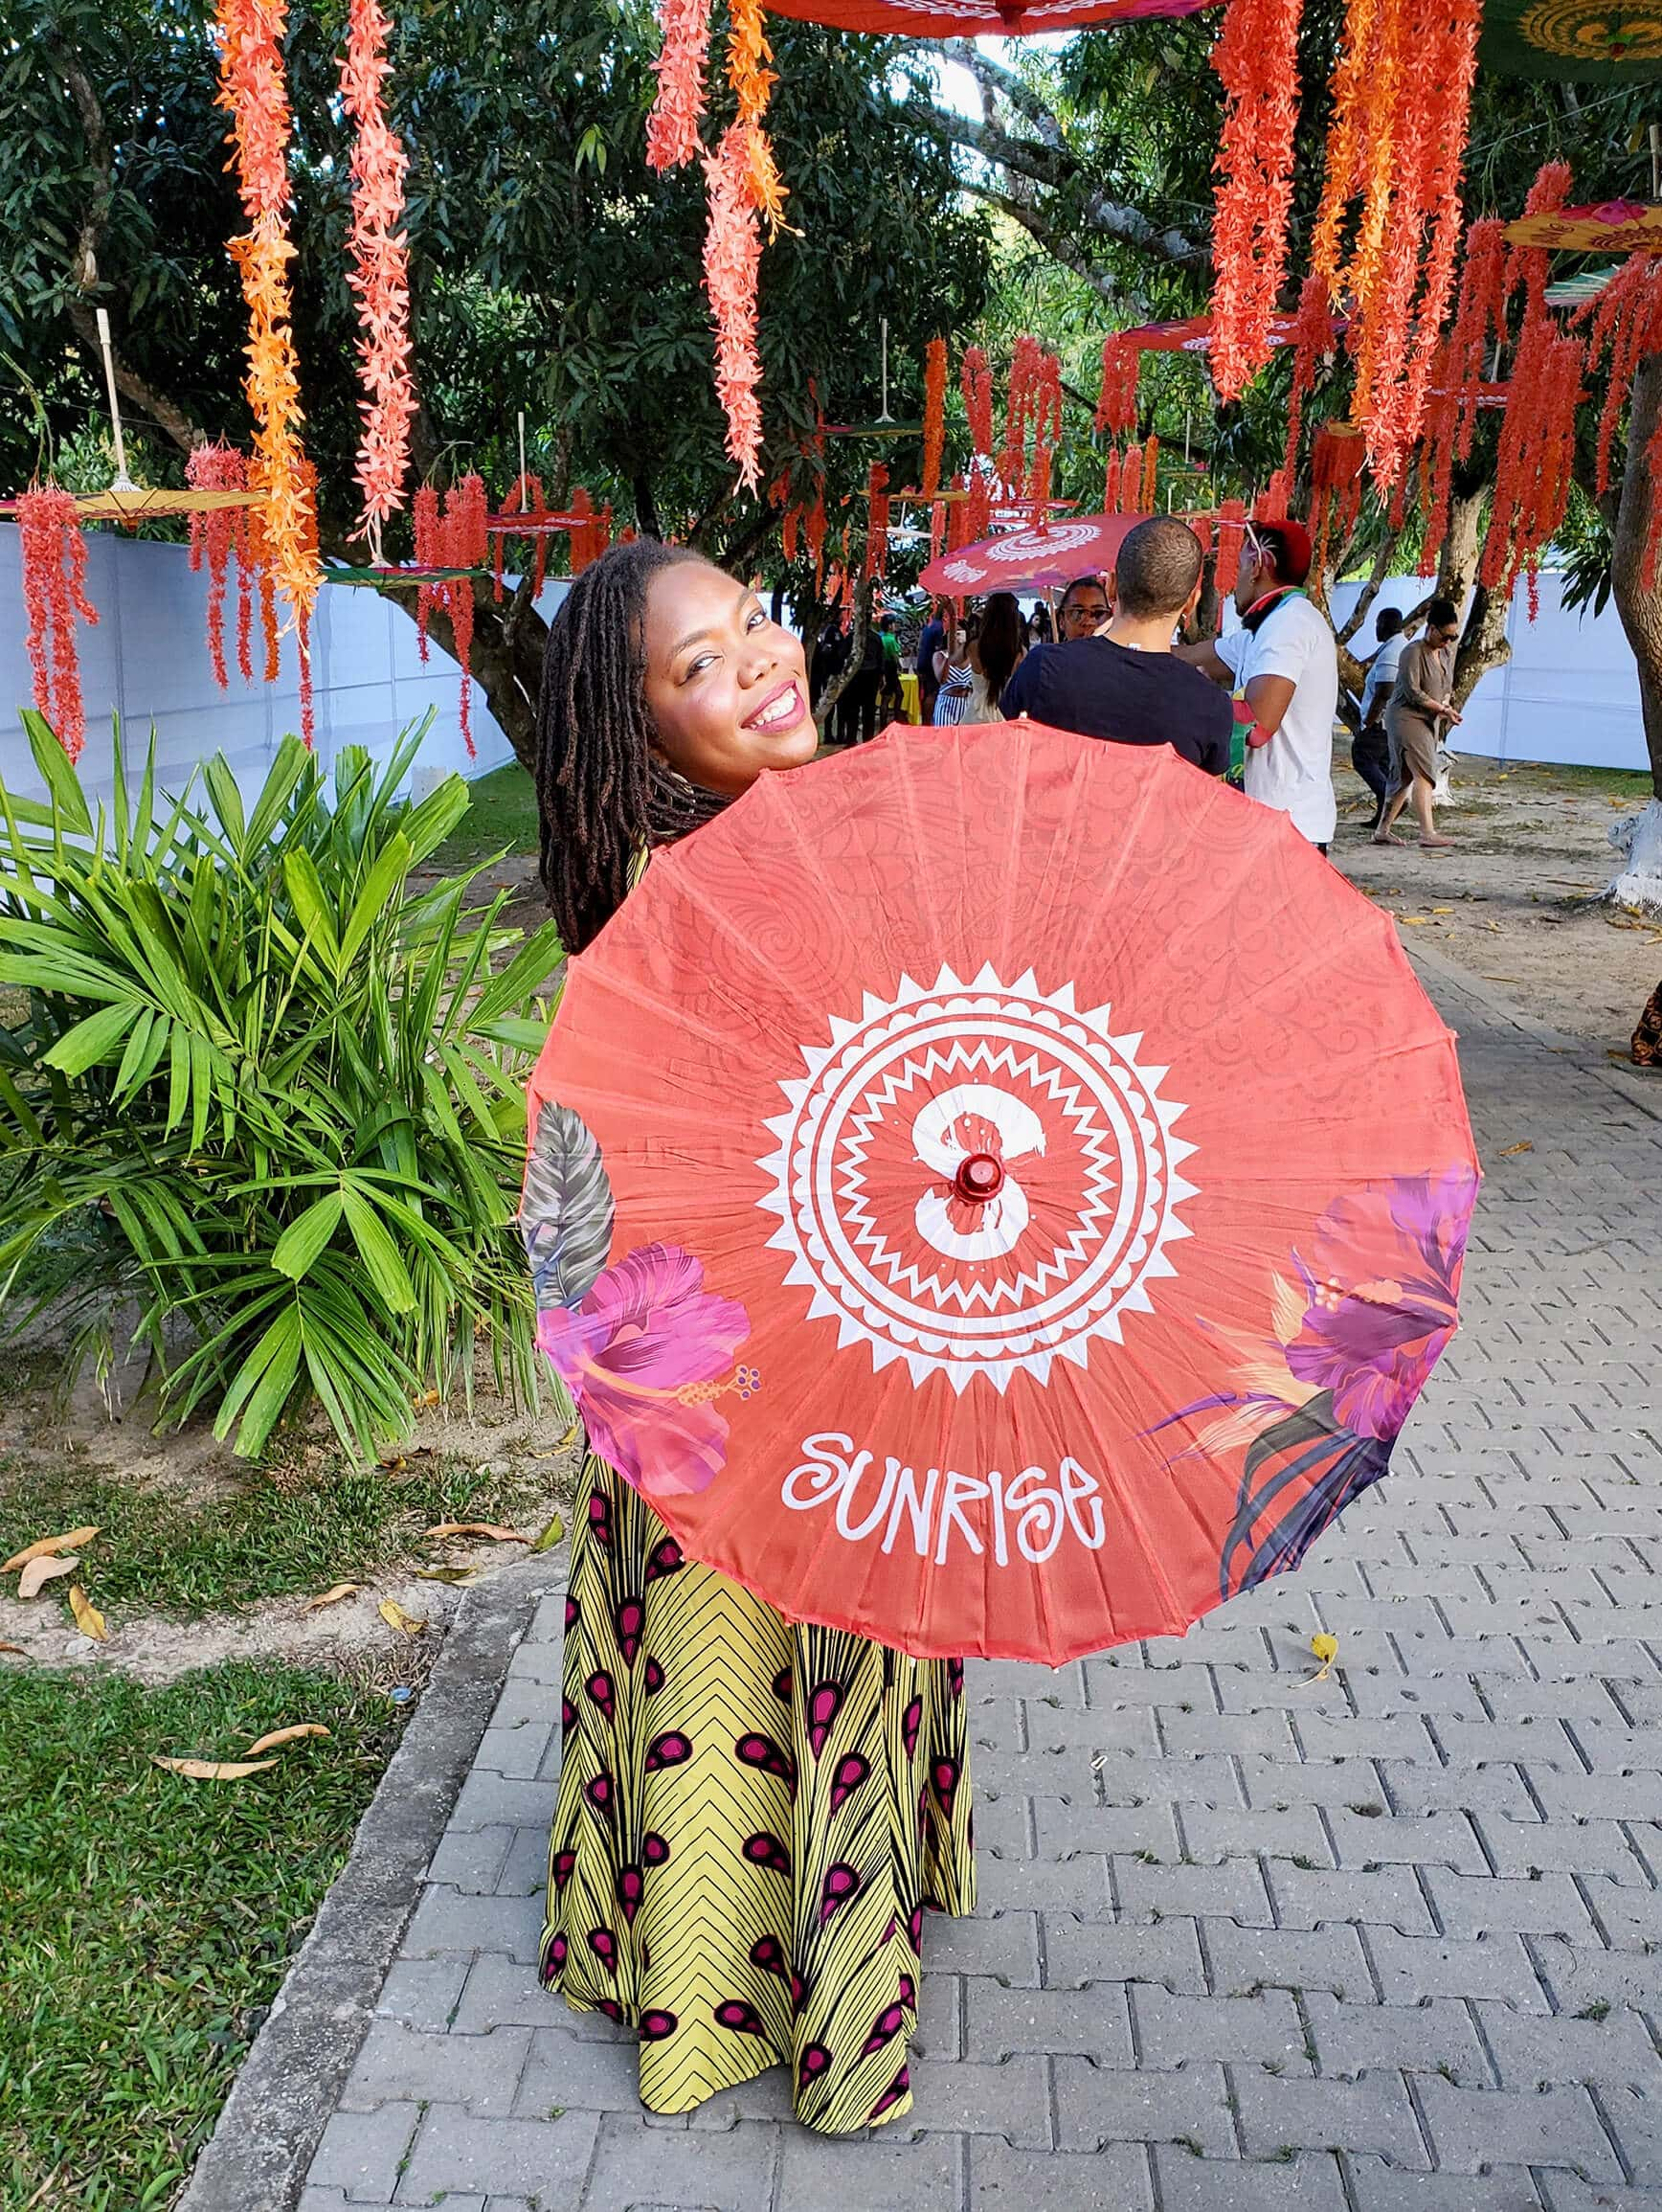 Travel bloggers reveal their favorite experiences in the world - Carnival in Trinidad & Tobago